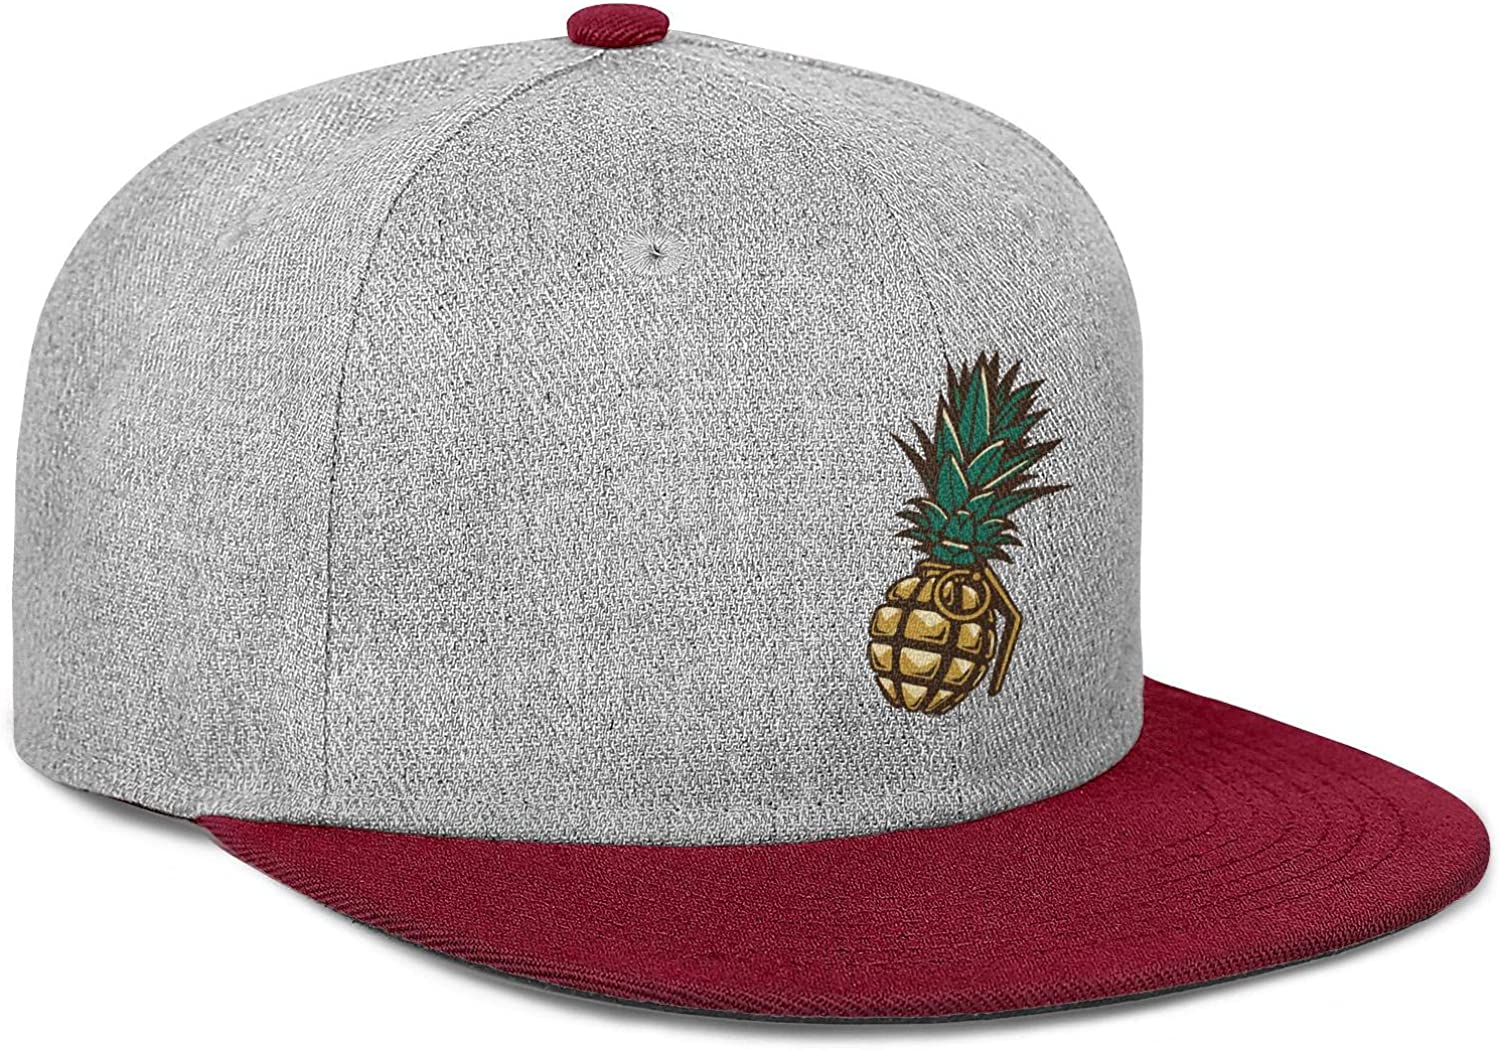 Pineapple Gold with Grenade Shape Men Womens Wool Ball Cap Adjustable Snapback Outdoor Hat